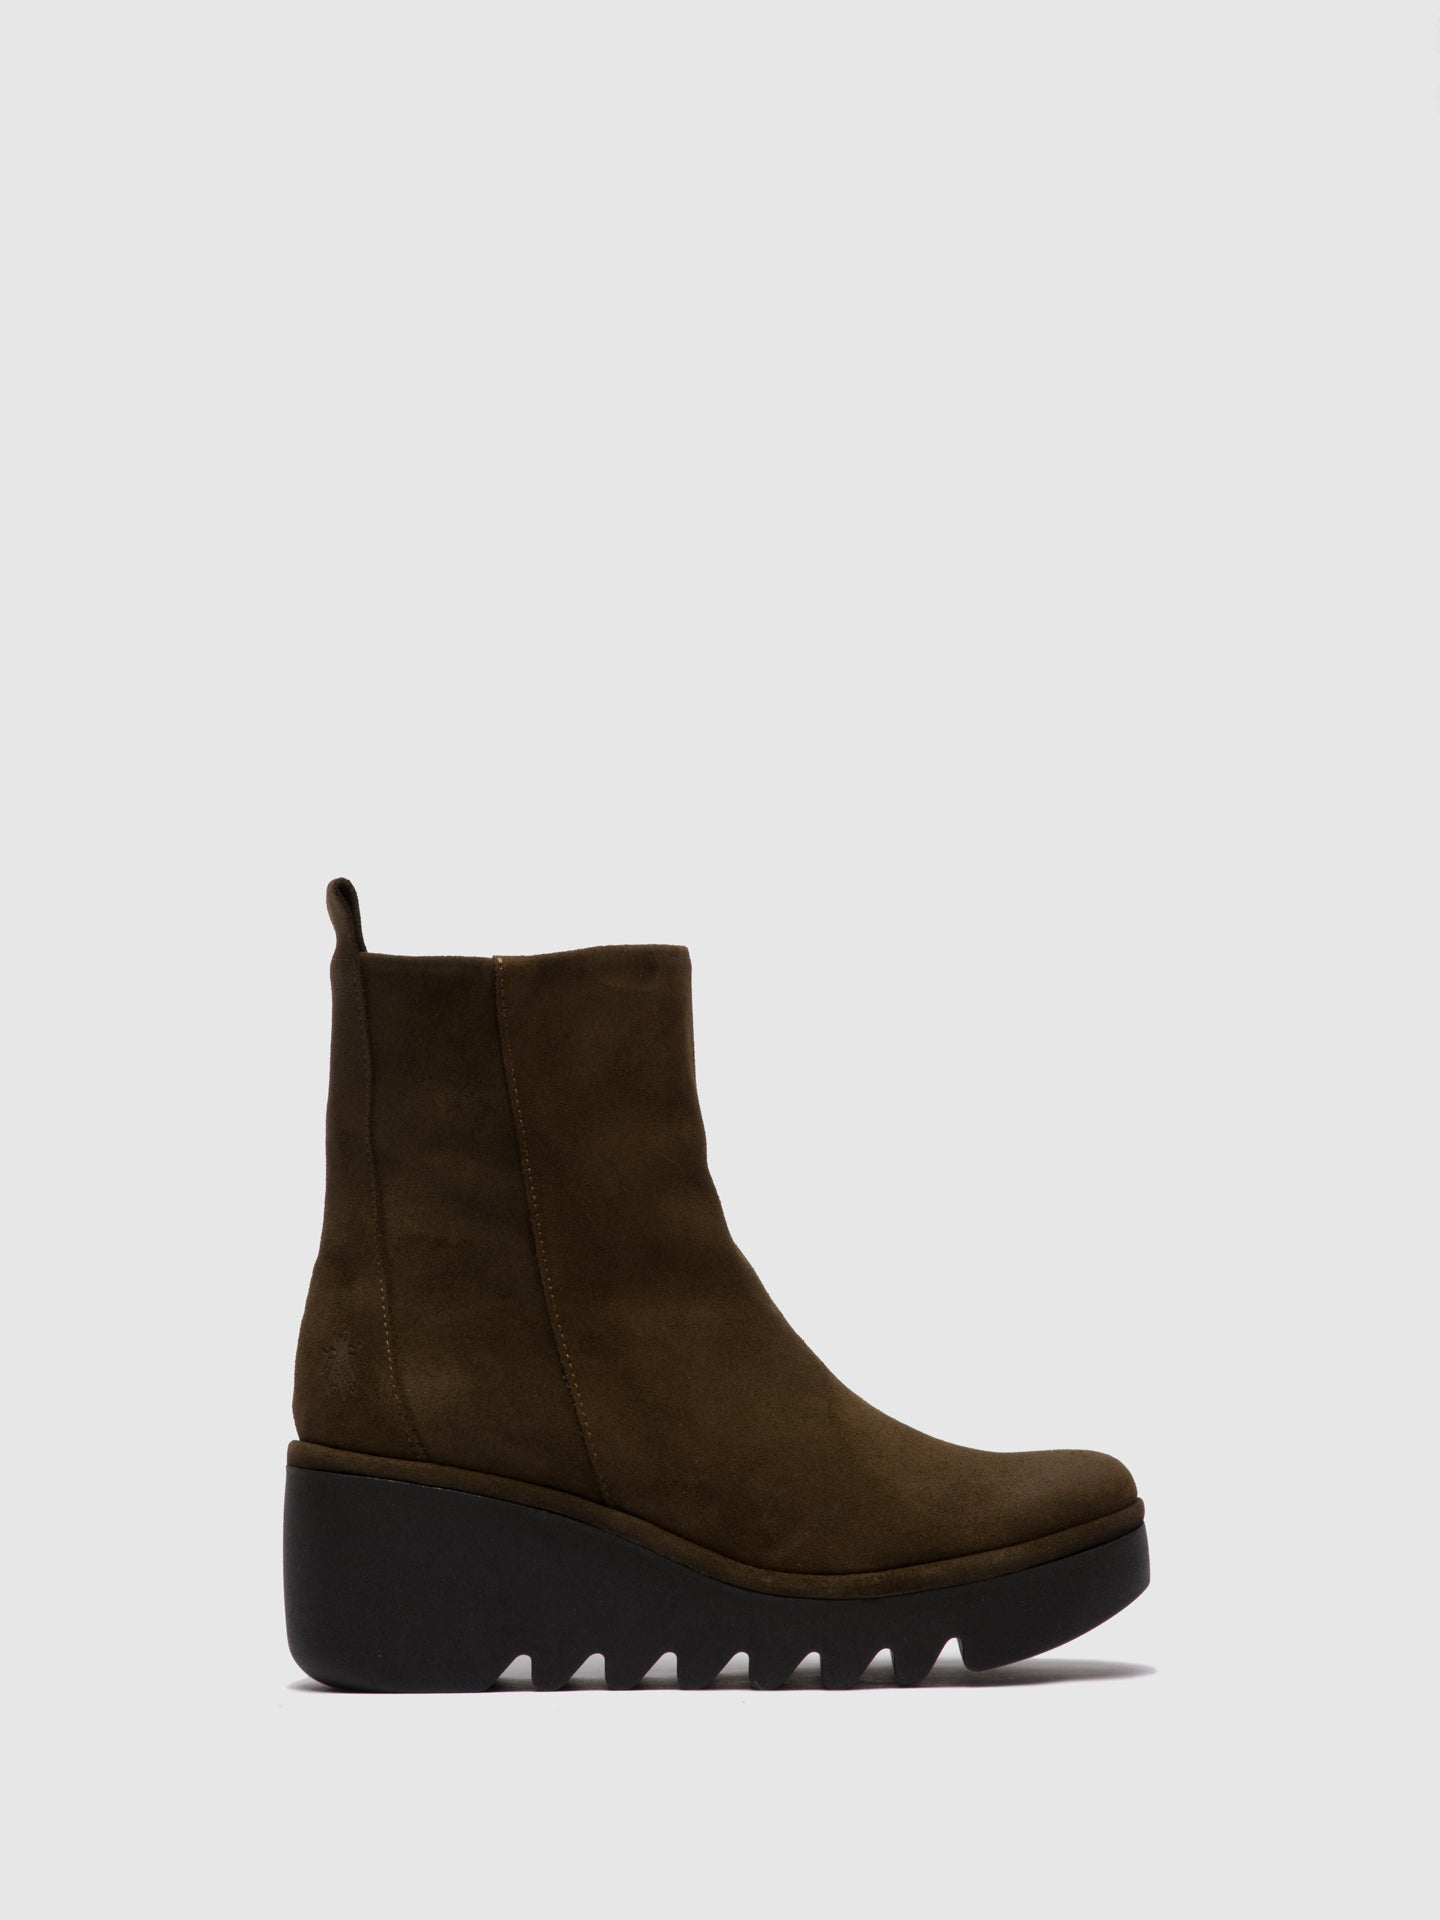 Fly London Zip Up Ankle Boots BALE250FLY OILSUEDE SLUDGE